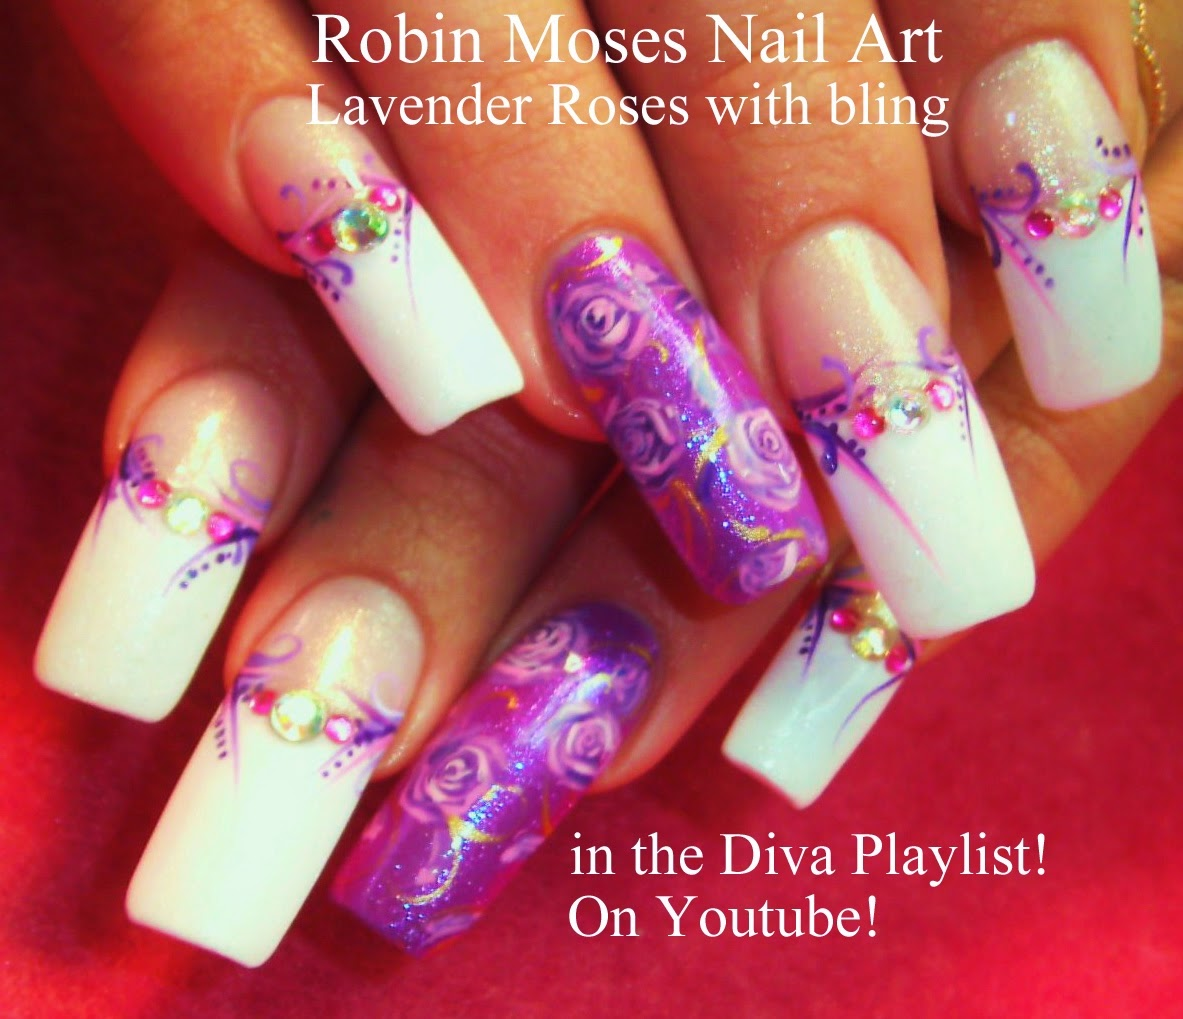 Robin Moses Nail Art Designs: 167 Videos